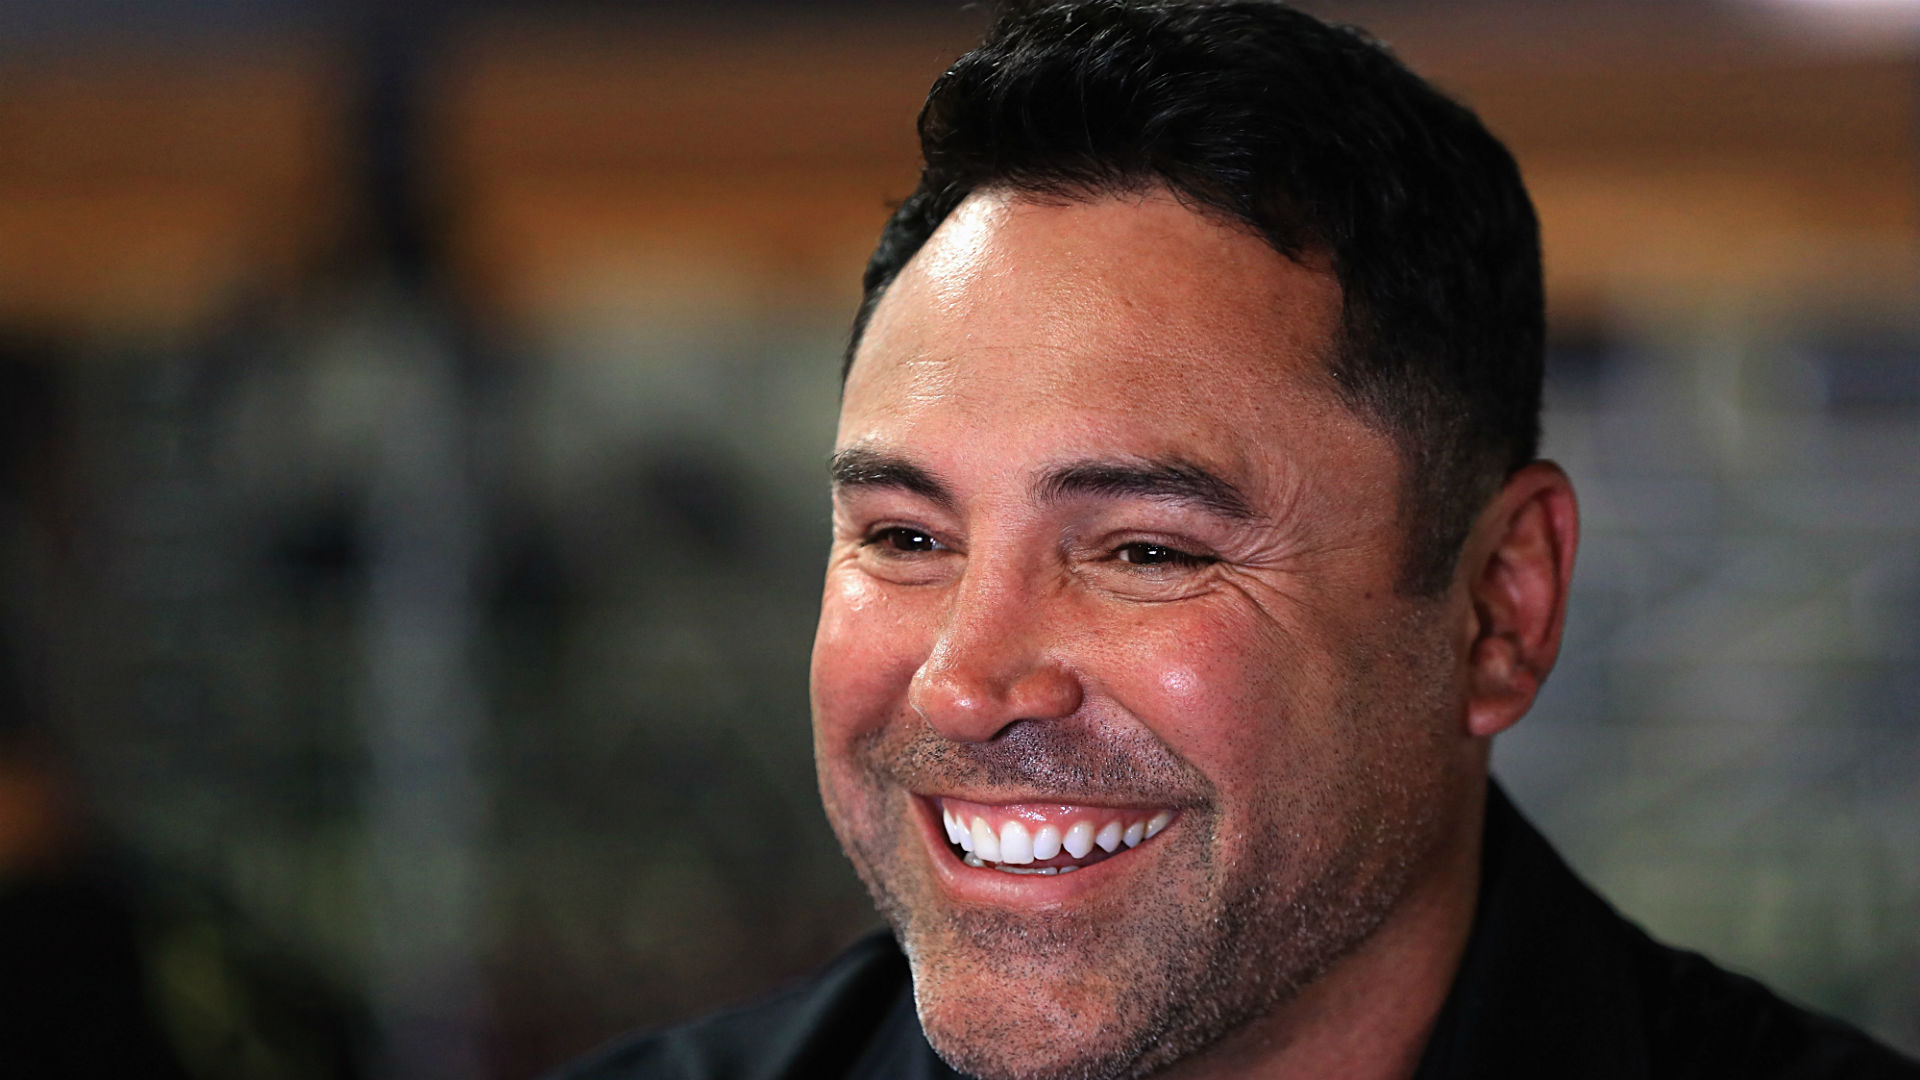 Oscar De La Hoya coming out of retirement; wants to fight 'any top guy out there'